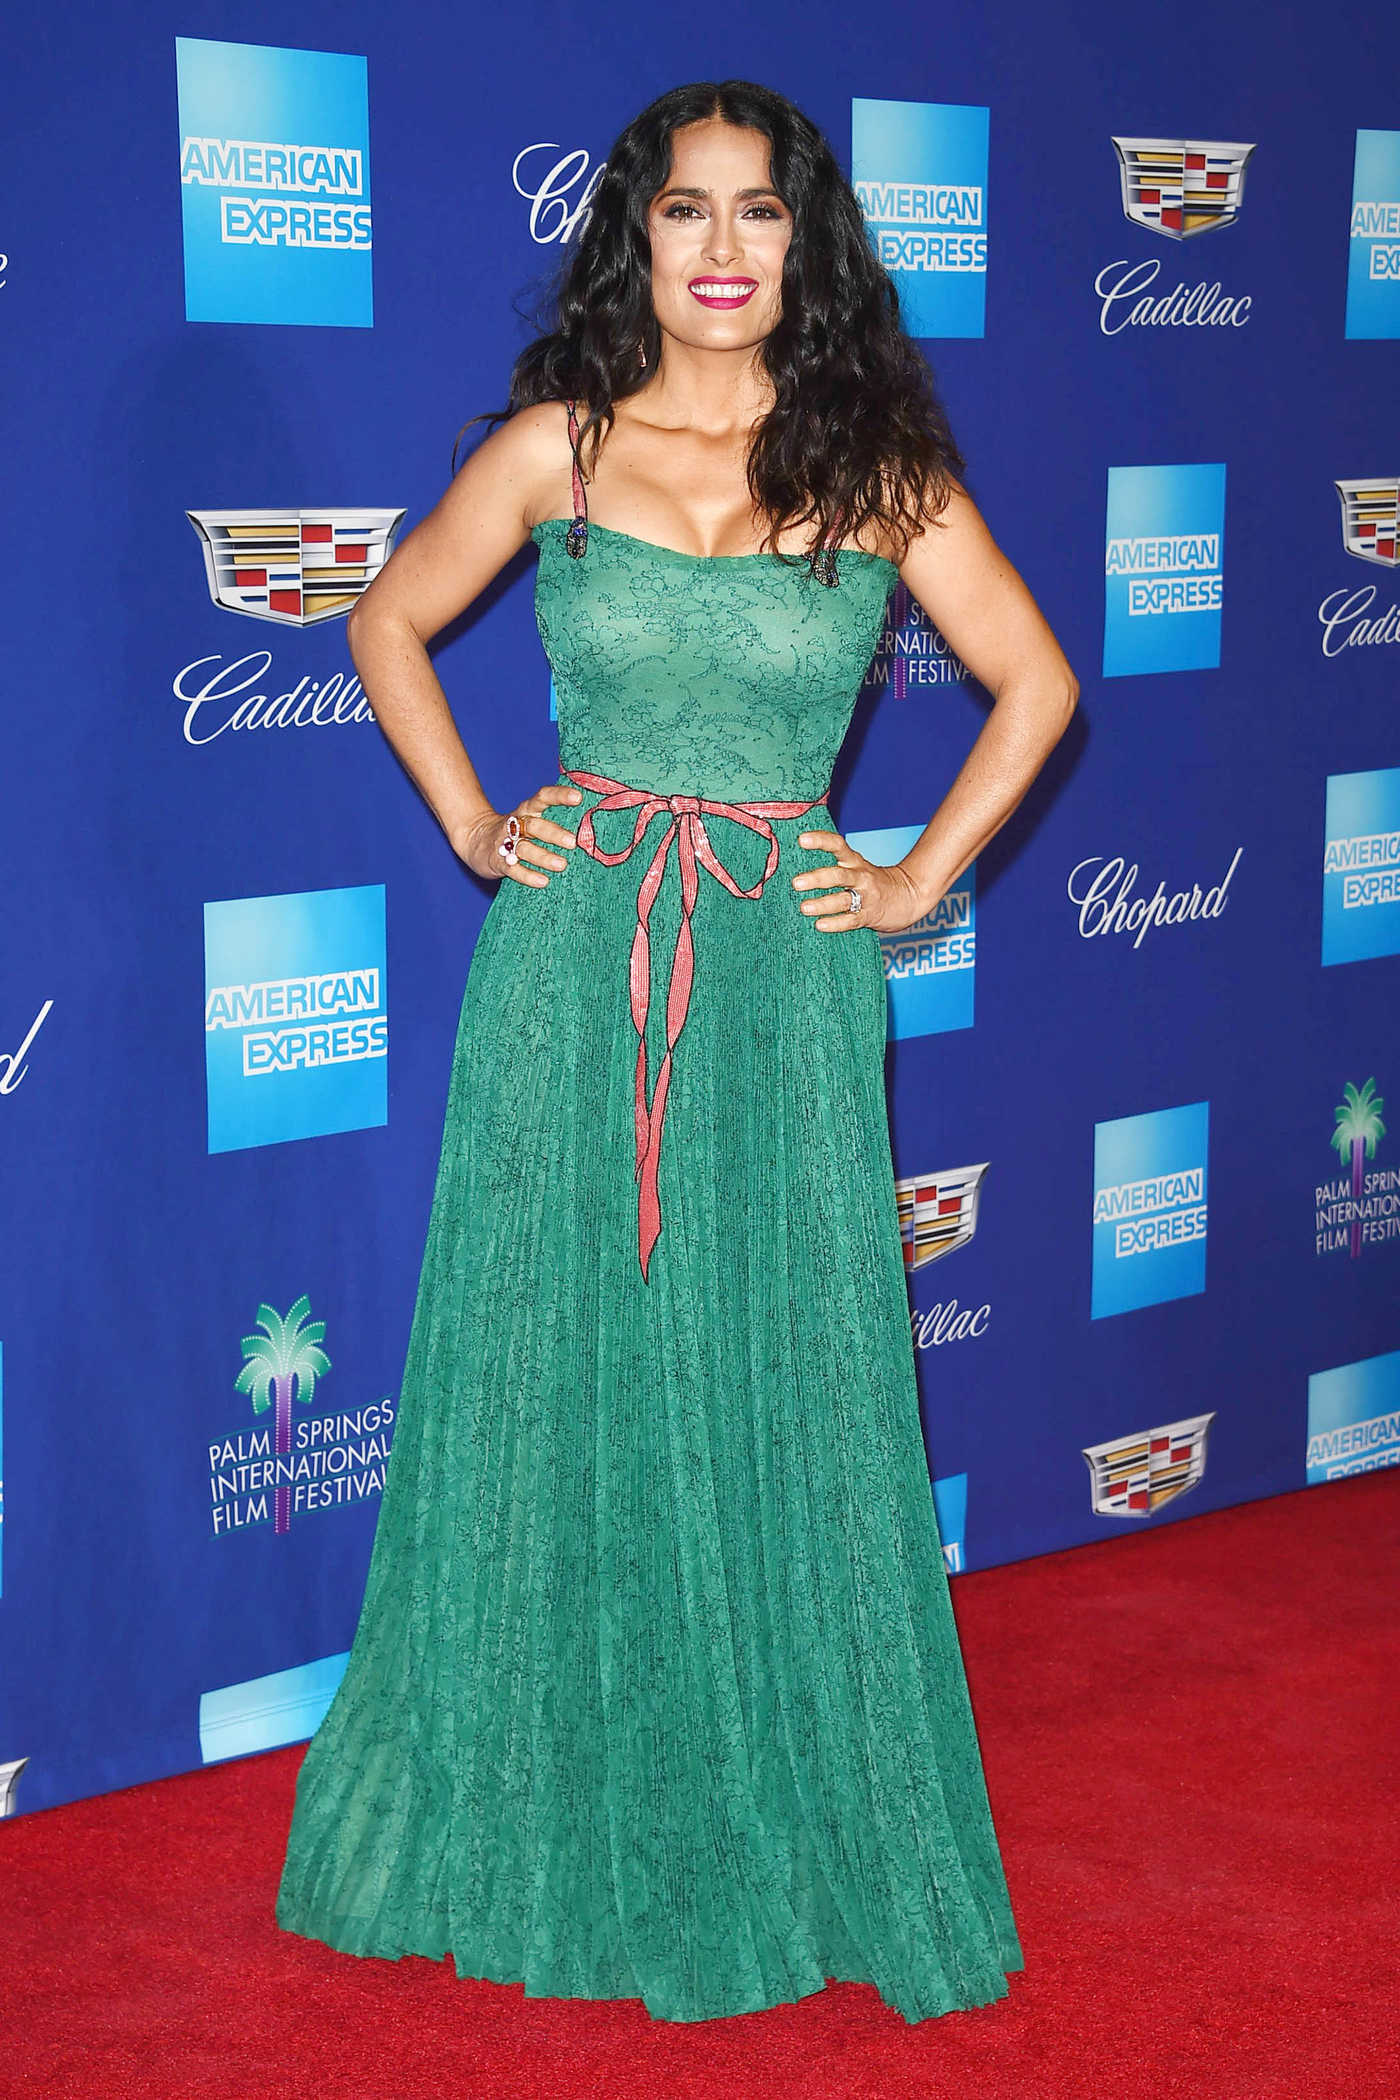 Salma Hayek at the 29th Annual Palm Springs International Film Festival Awards Gala in Palm Springs 01/02/2018